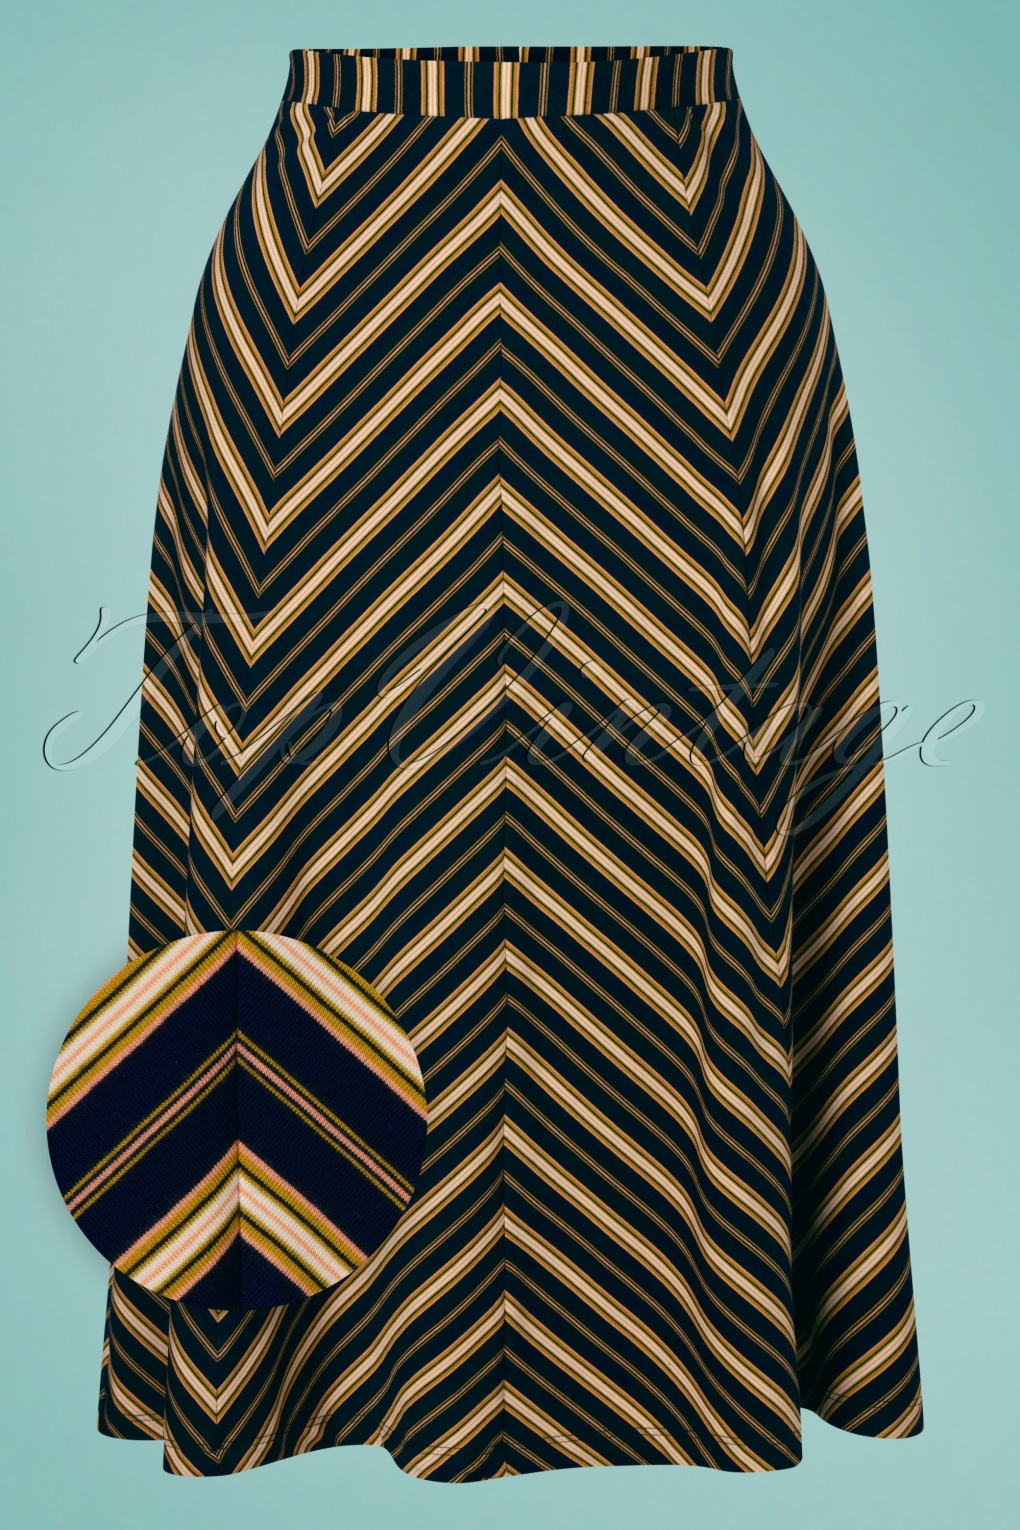 1960s Style Clothing & 60s Fashion 60s Juno Gonzalez Stripe Panel Skirt in Blue  AT vintagedancer.com